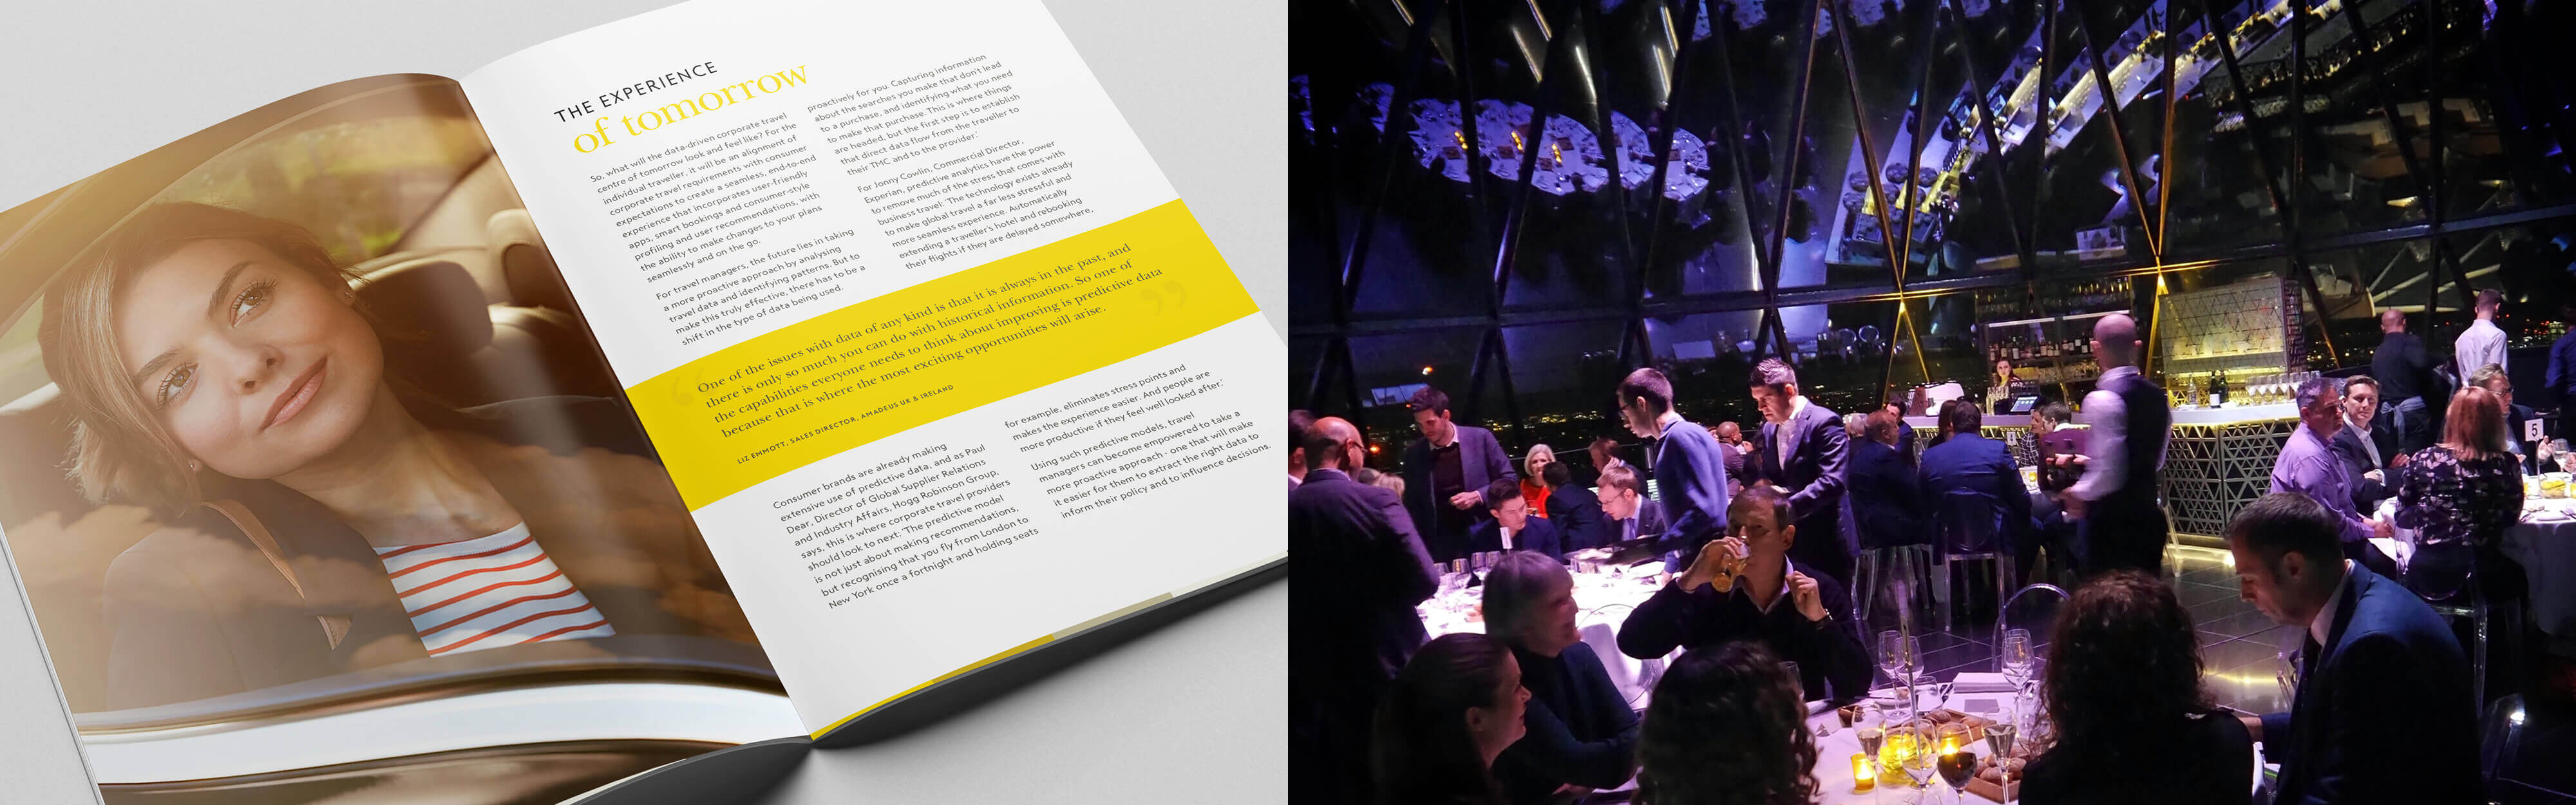 alg-white-paper-and-event-the-gherkin